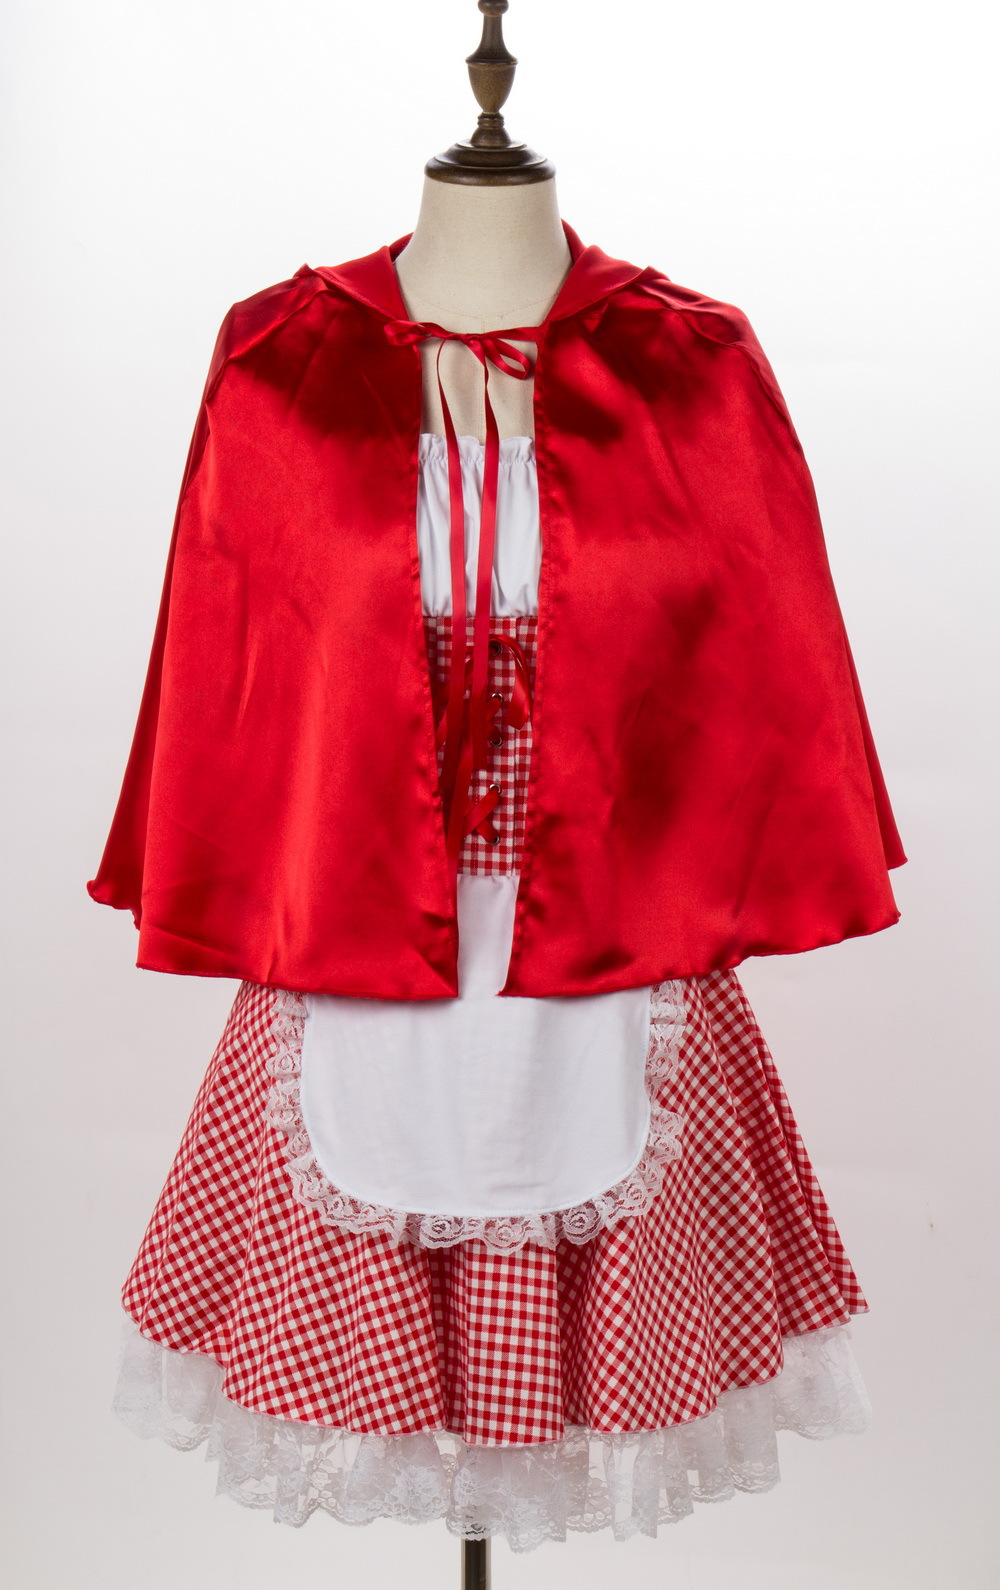 Women Copaly Dress Suit Plaid with Lace Decoration for Halloween Beer Festival  red_6XL